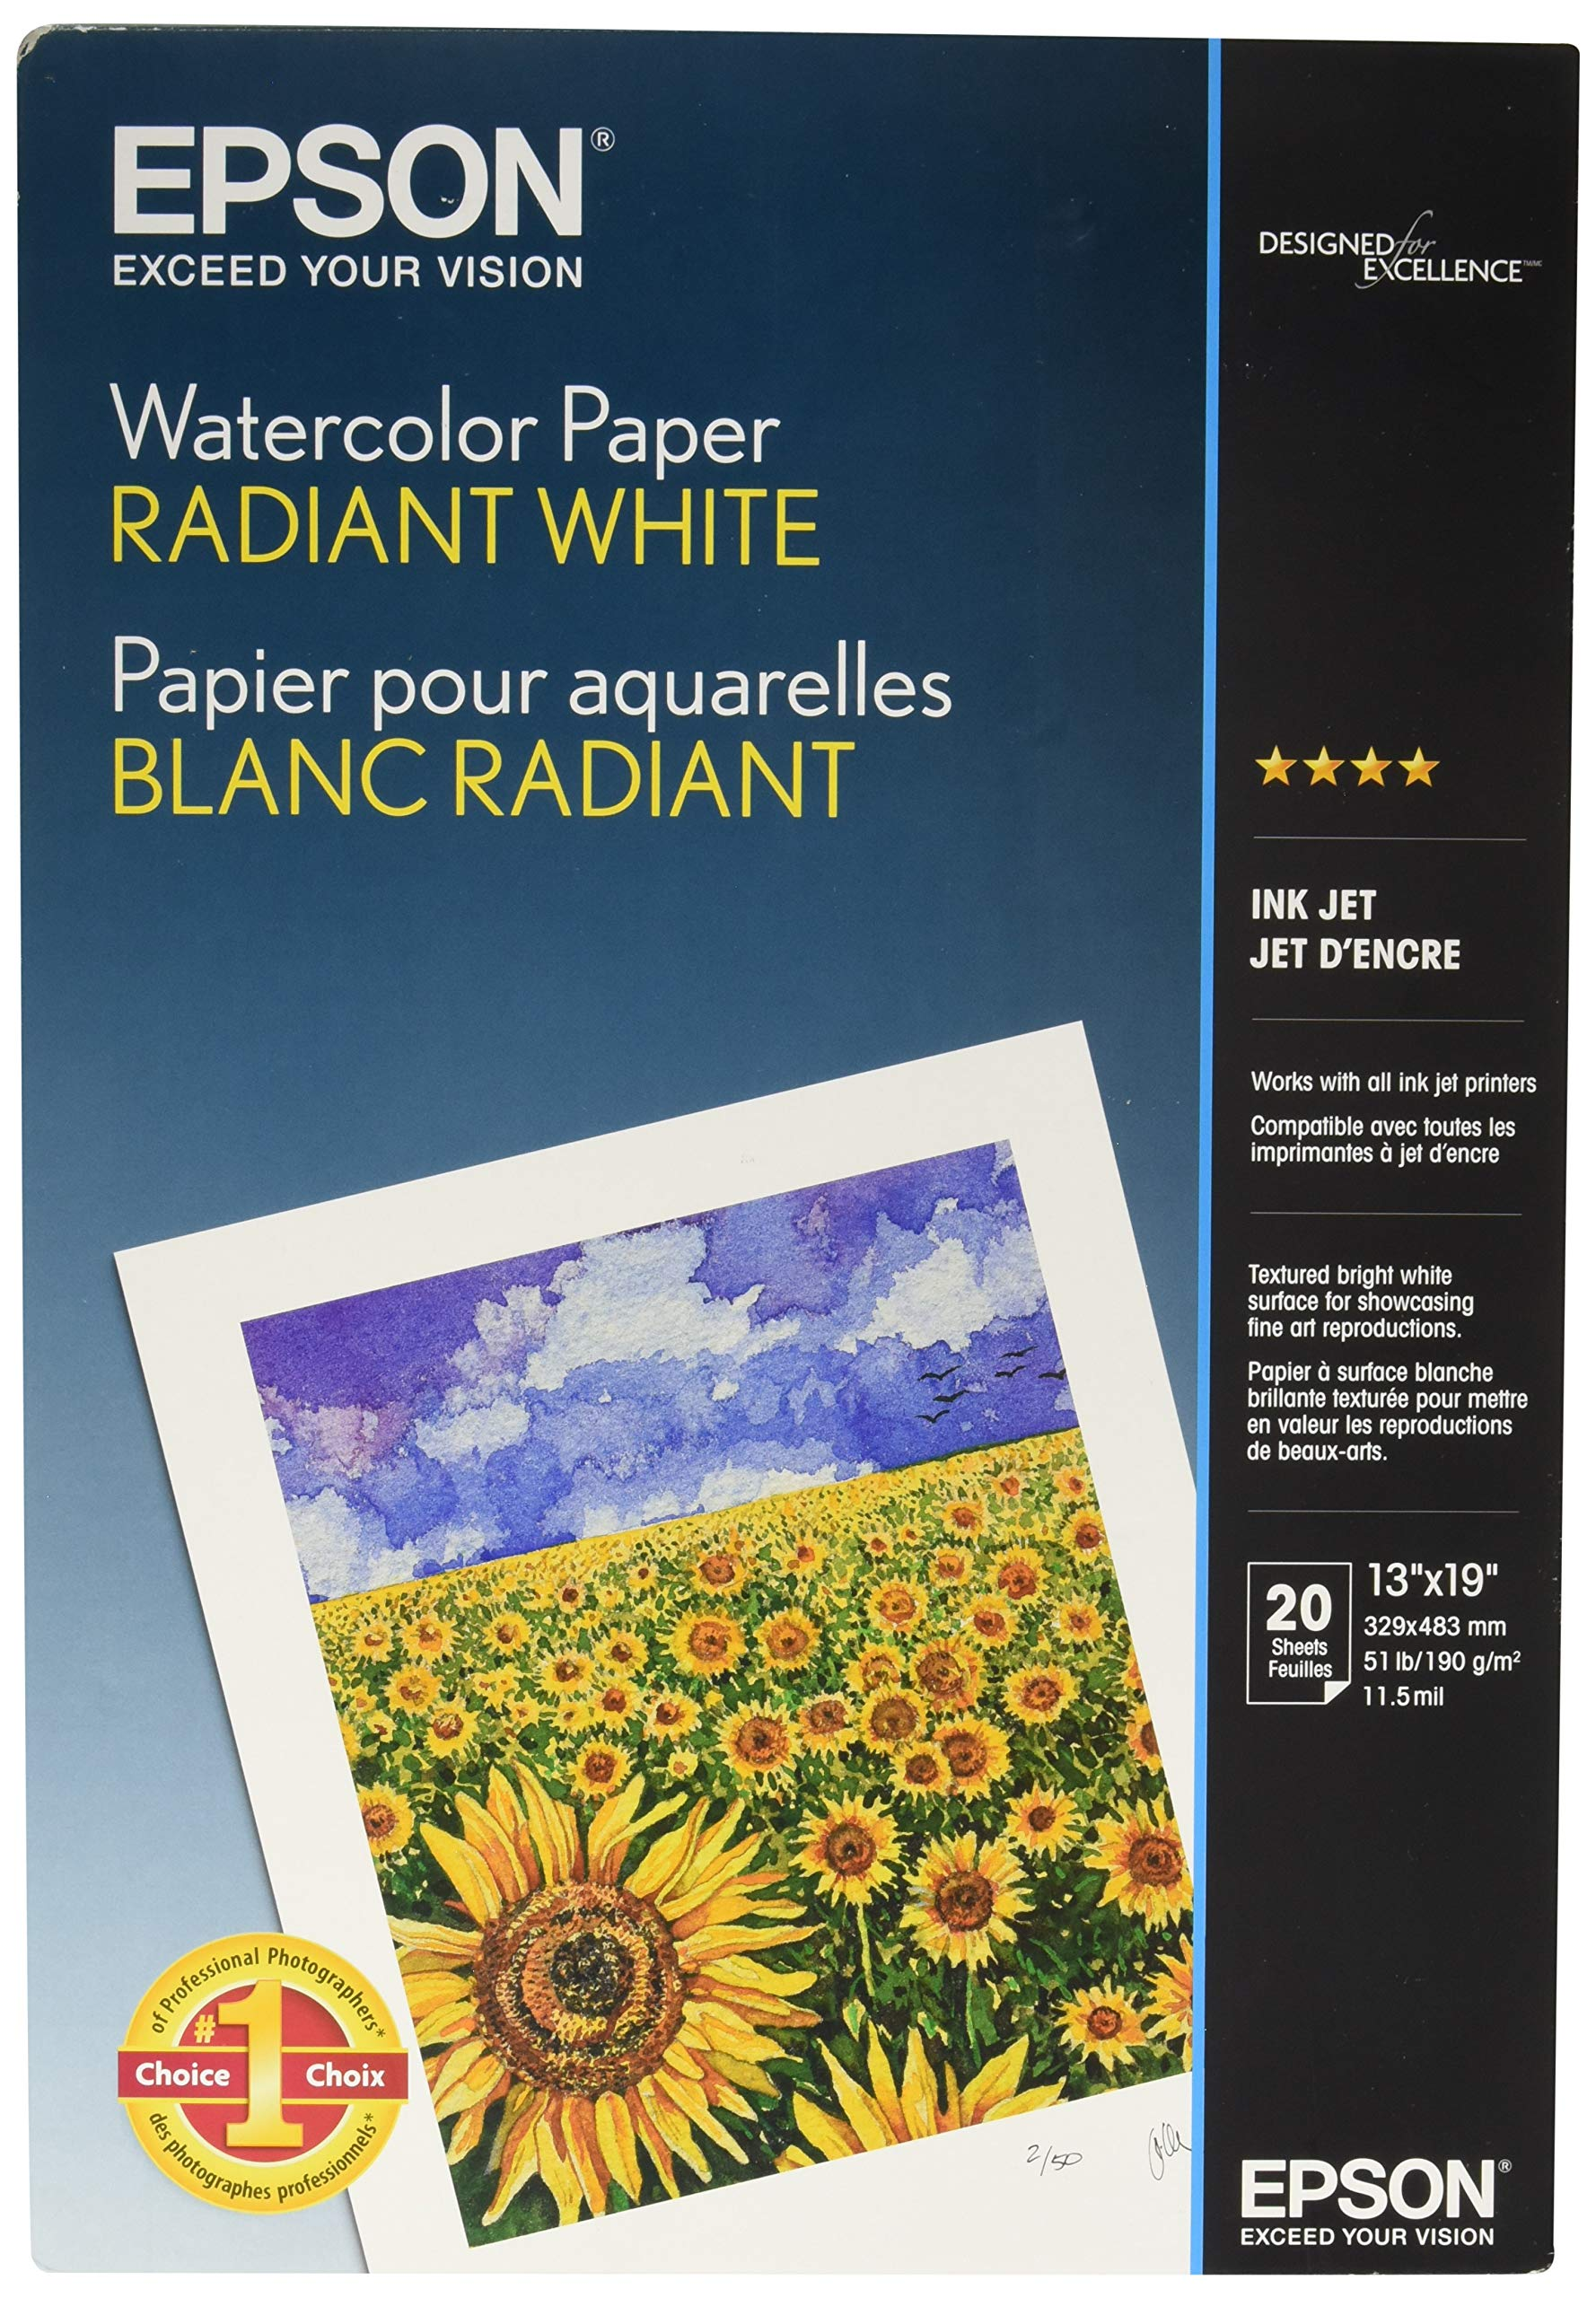 Epson Watercolor Paper Radiant, White, 13 x 19 Inches, 20 Sheets (S041351) by Epson